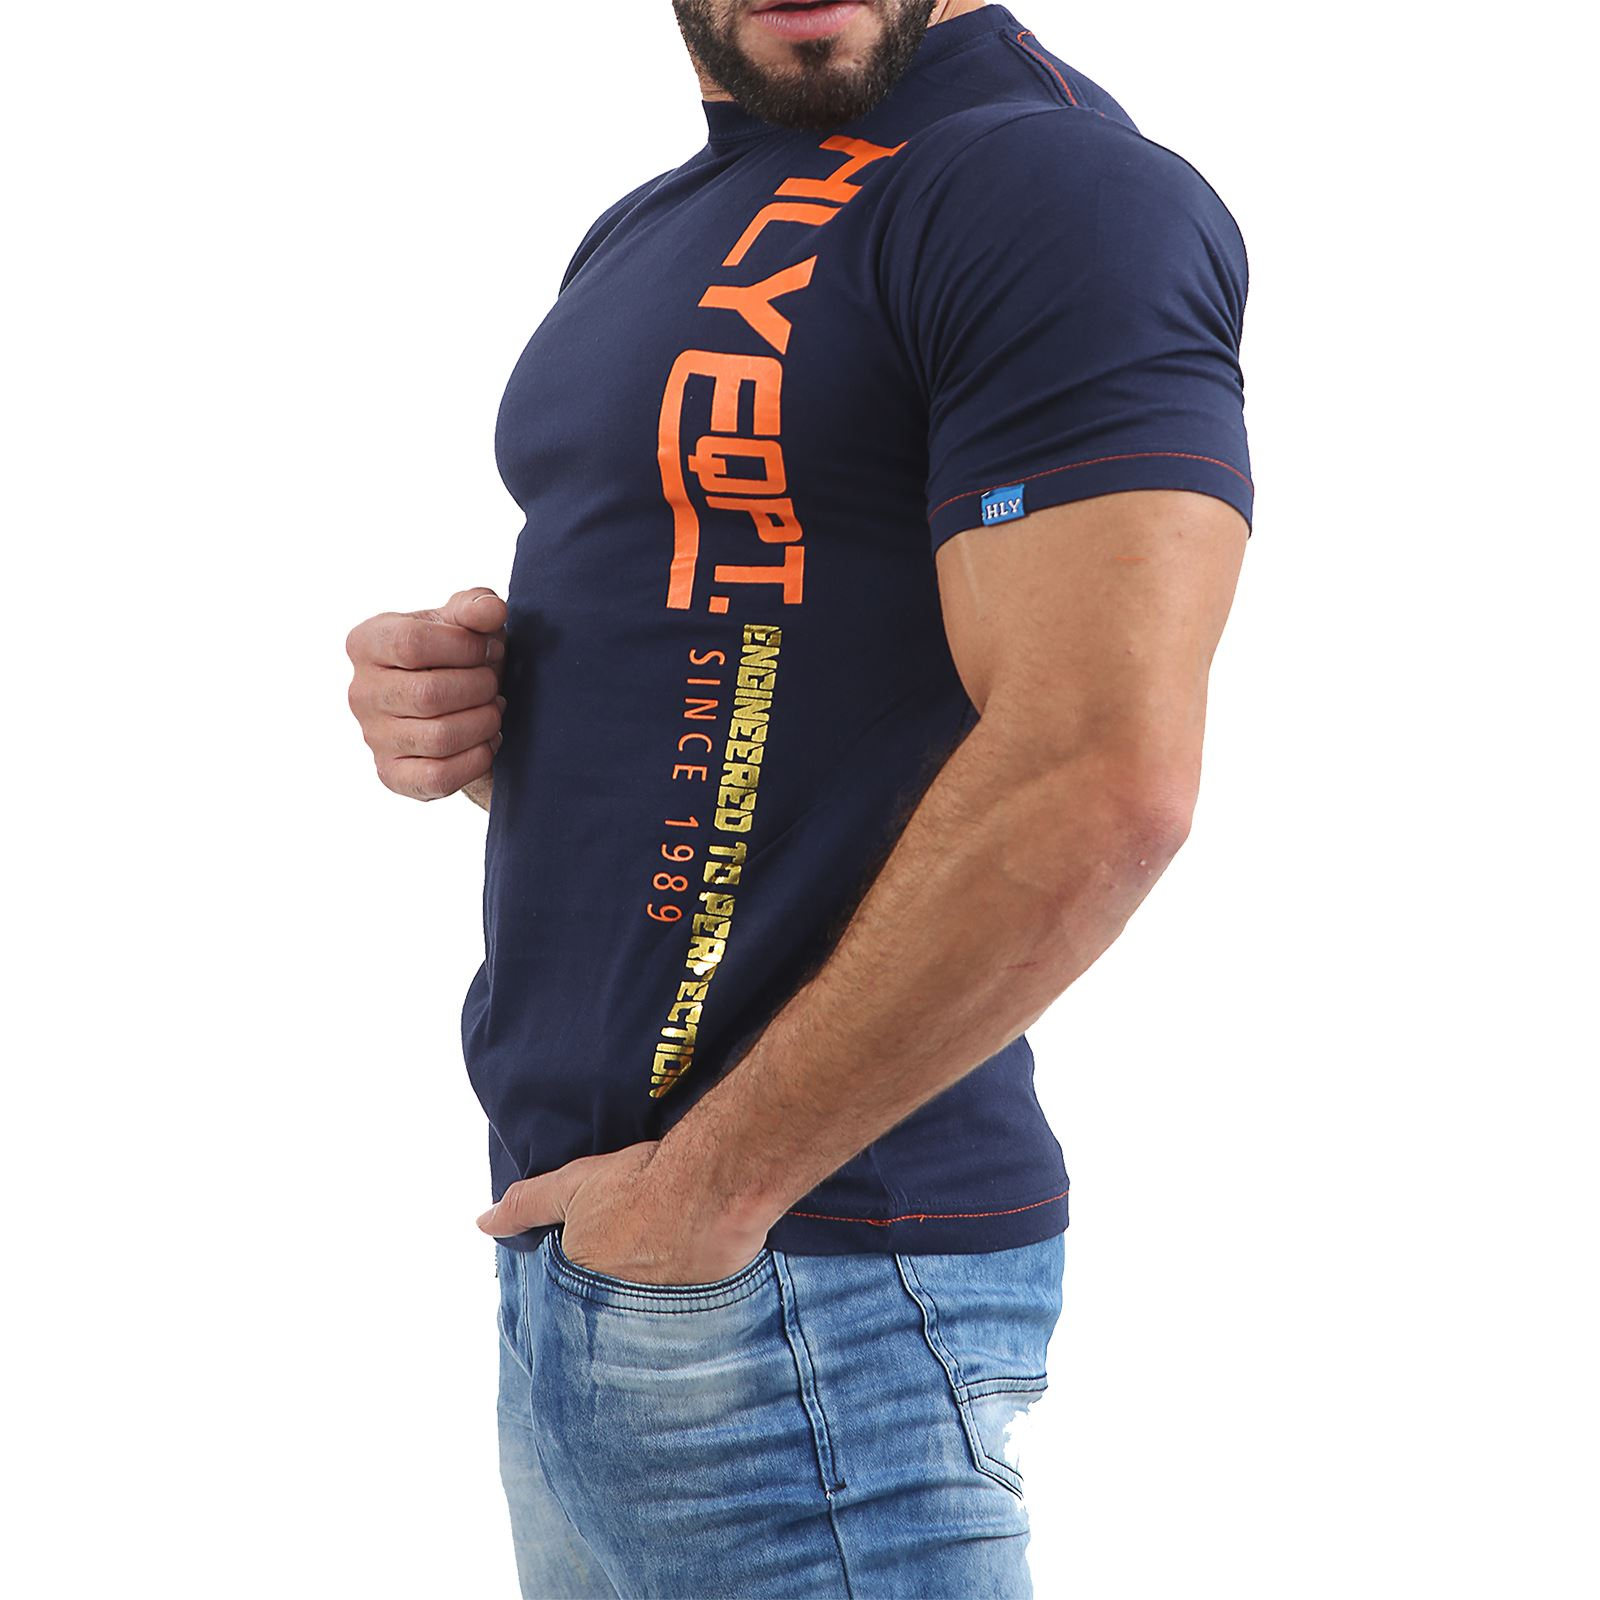 Mens-HLY-EQPT-Printed-T-Shirt-100-Cotton-Gym-Athletic-Training-Tee-Top-Summer thumbnail 13